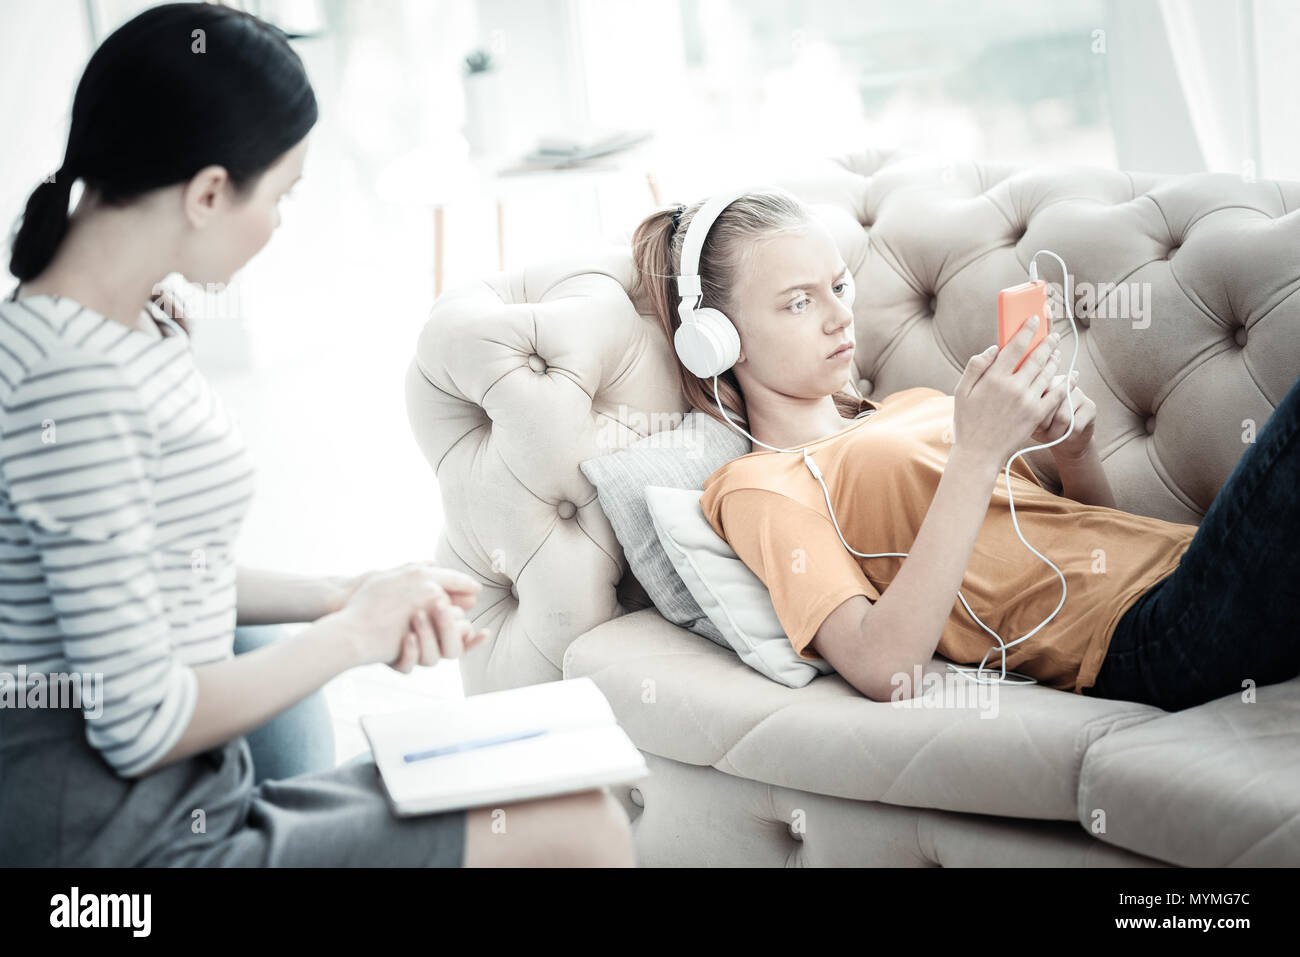 Unpleased teen girl listening to music during therapy - Stock Image